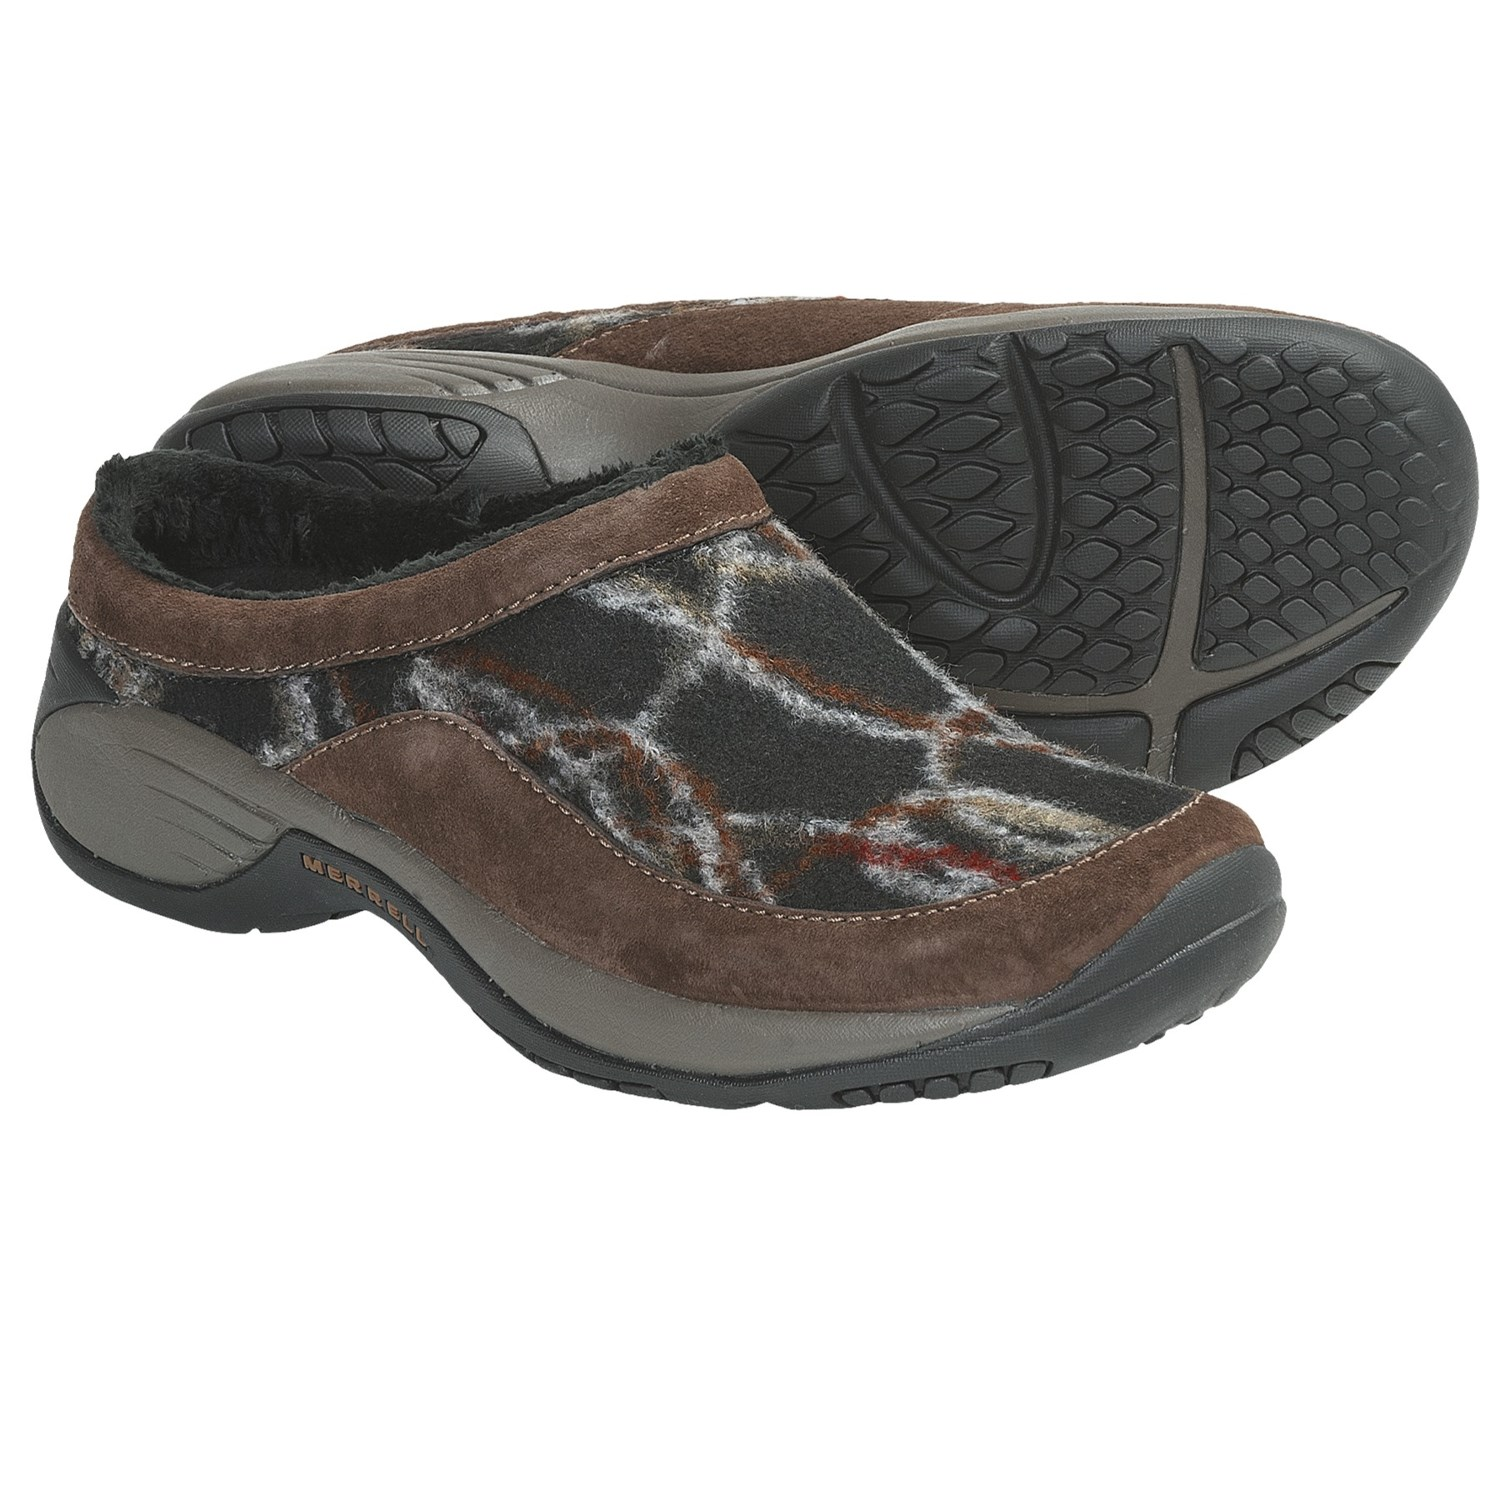 Merrell Shoes For Women Suede Clogs